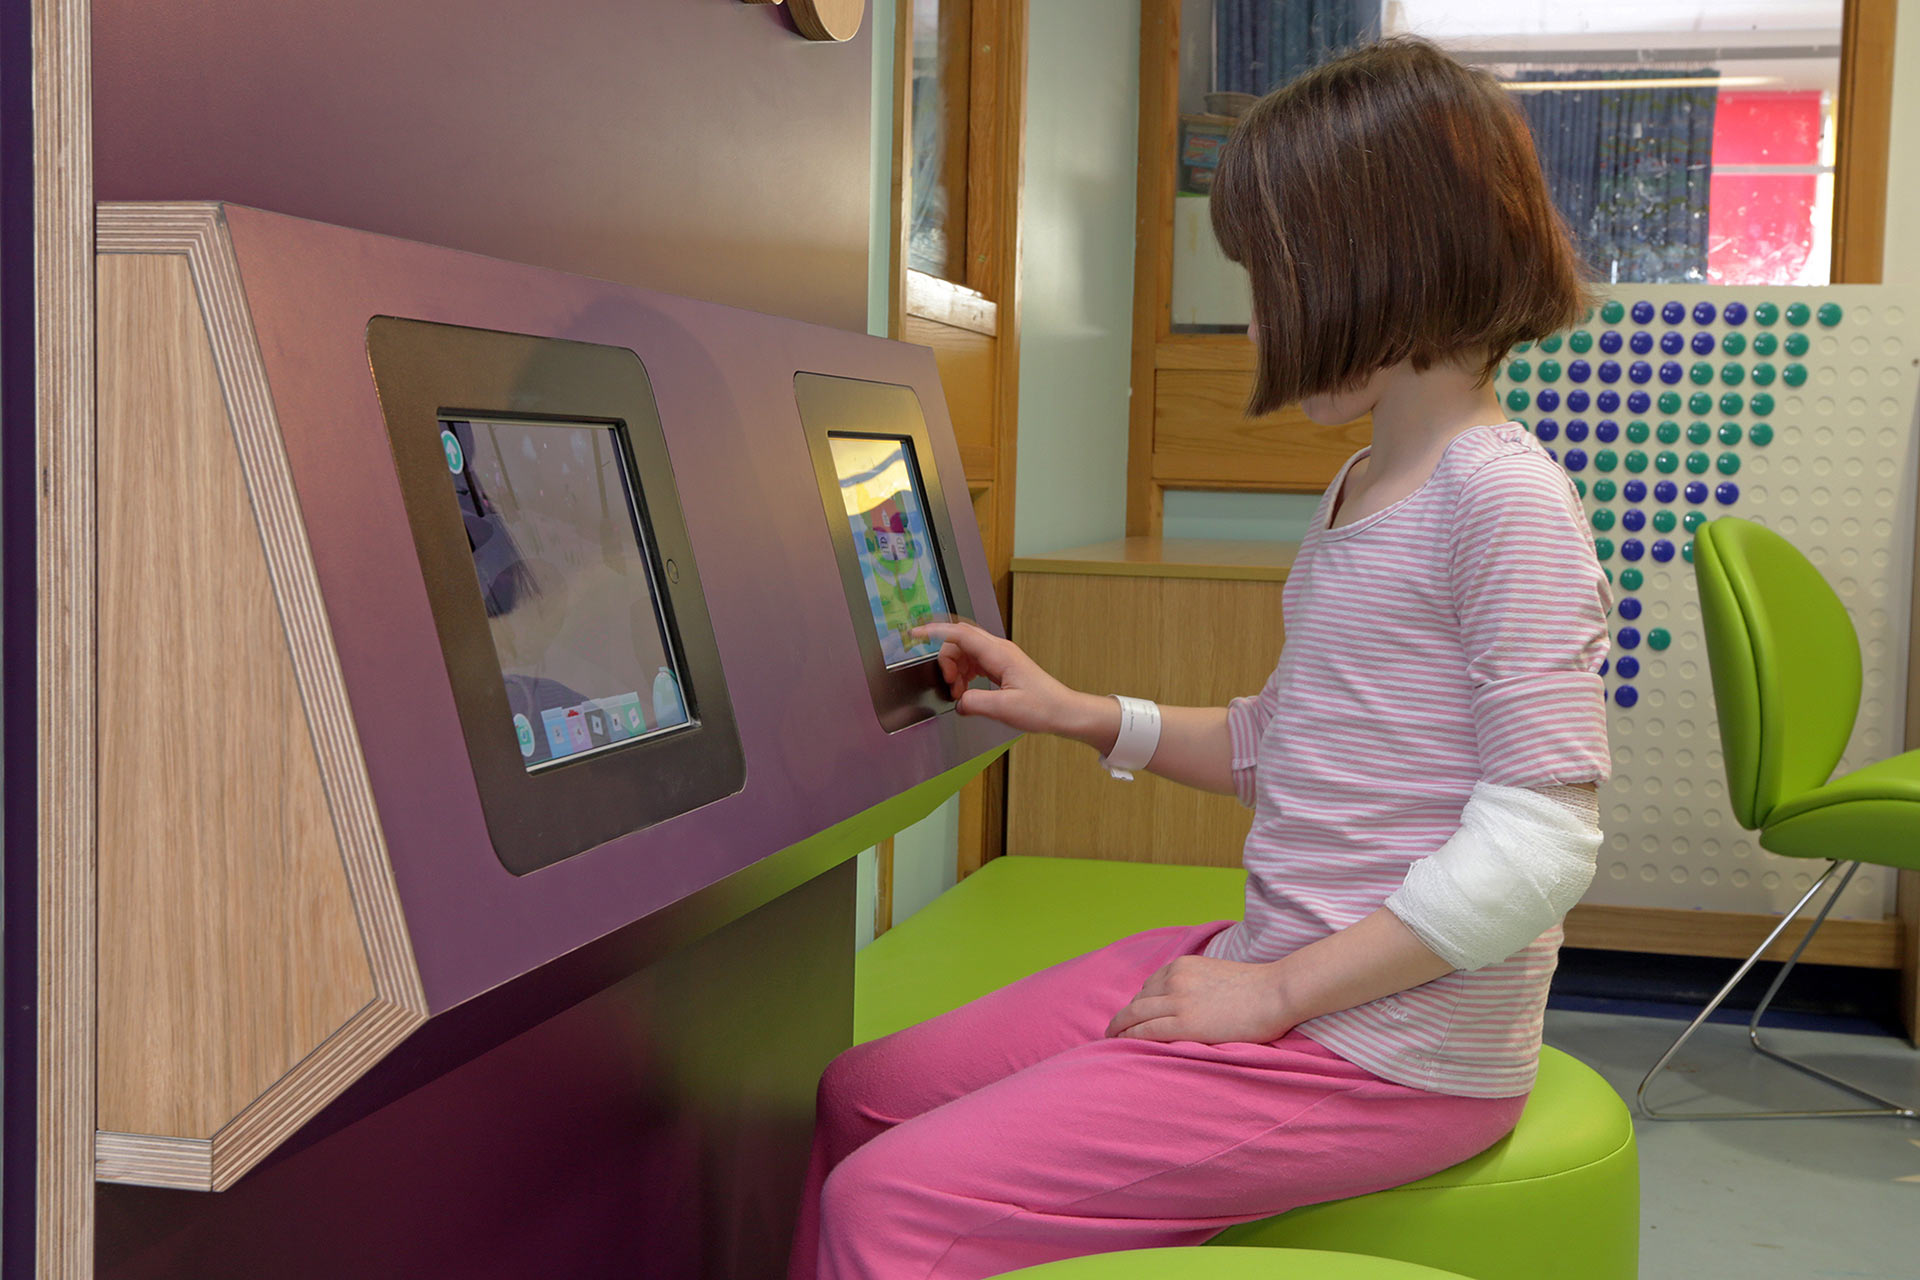 touch sensitive interactives to comply with infection control